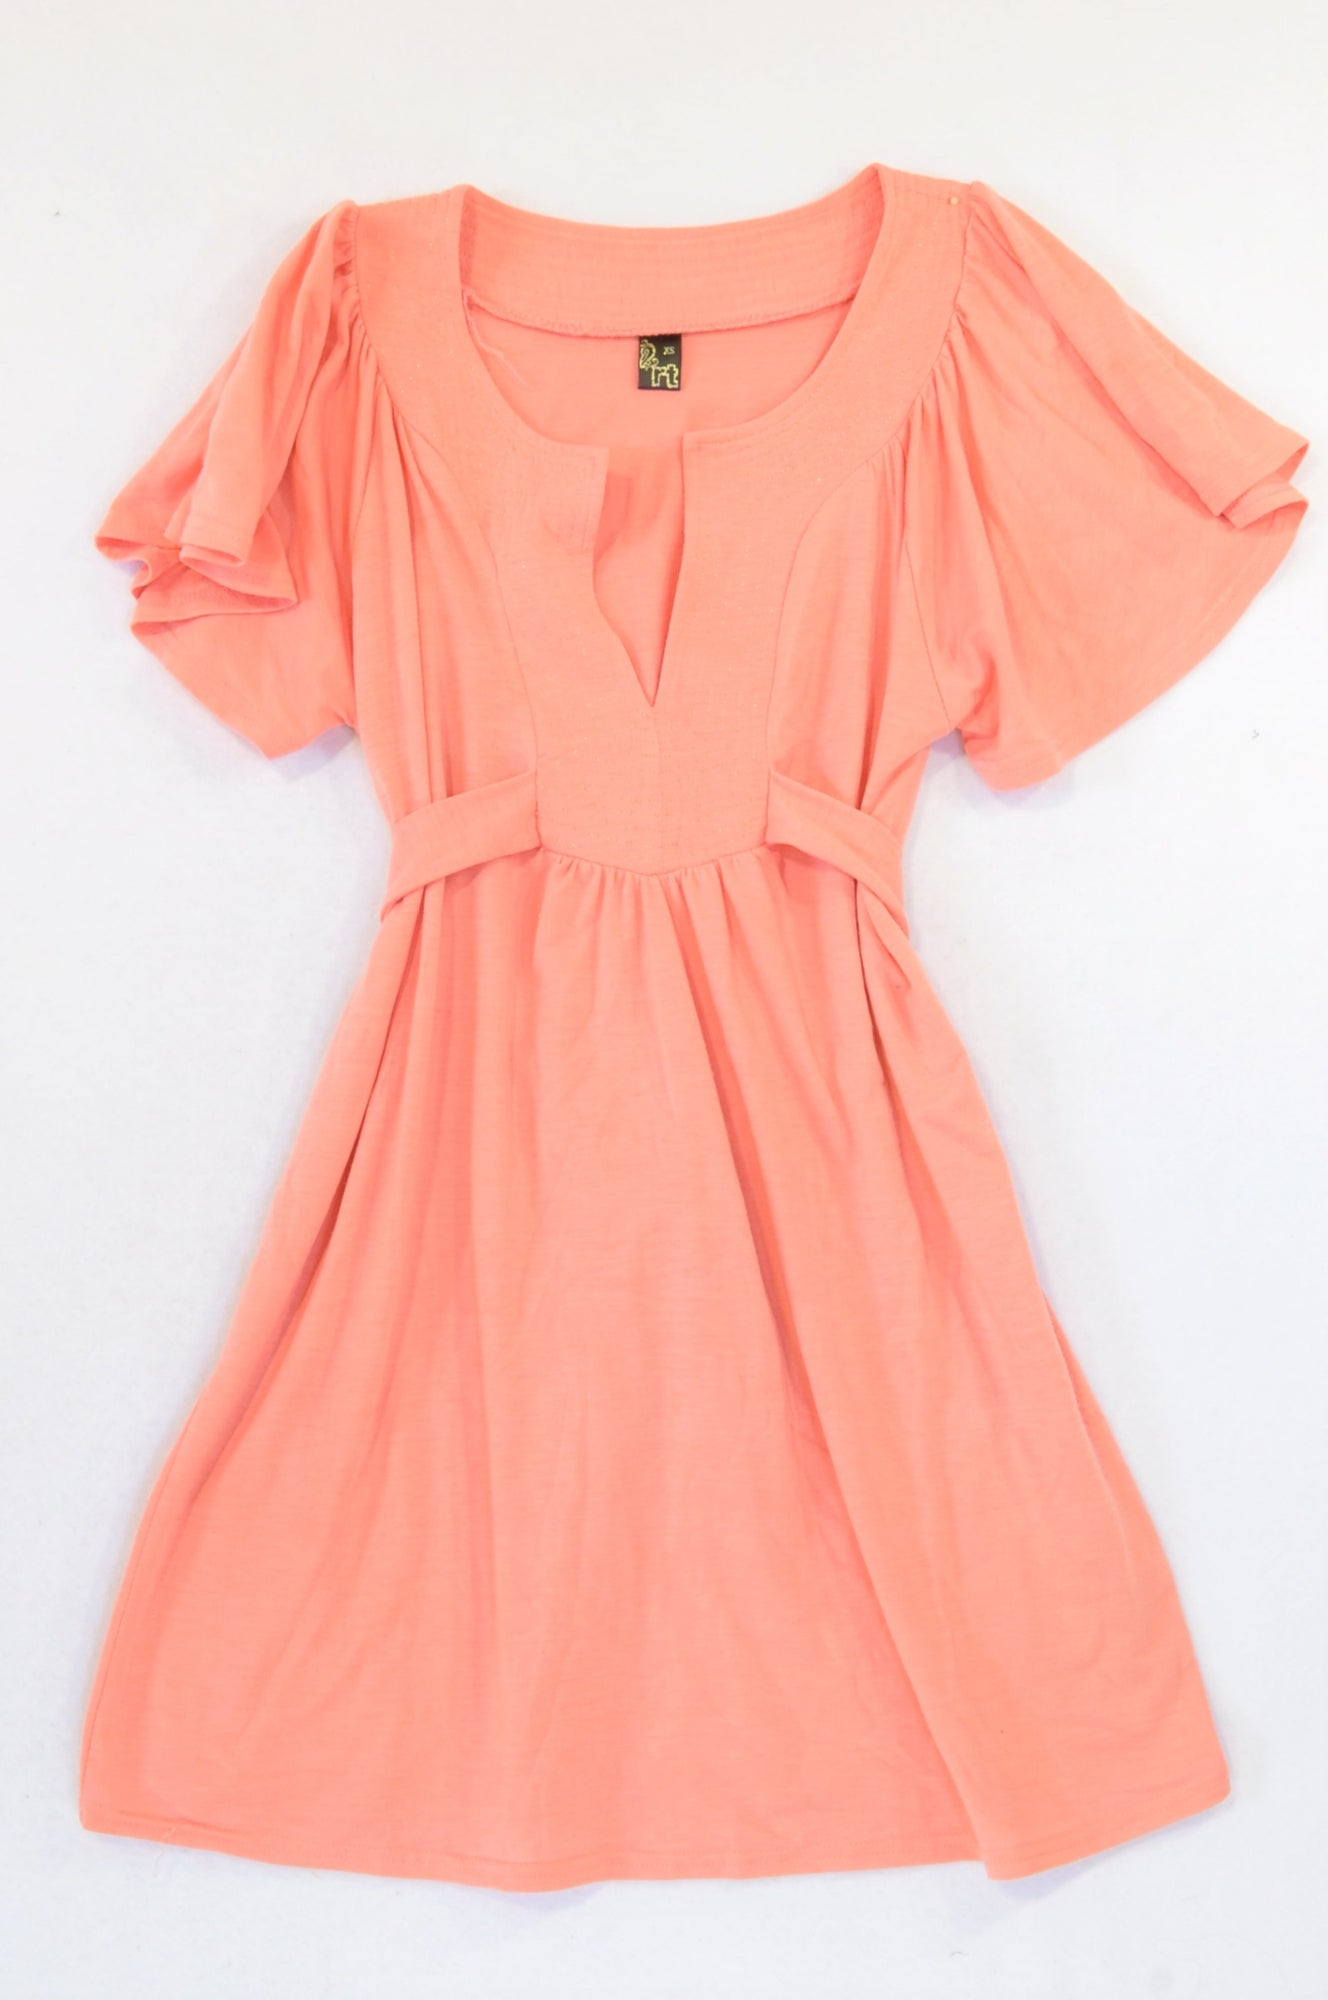 Mr. Price Light Coral Tie Baby Doll Tunic Top Women Size XS